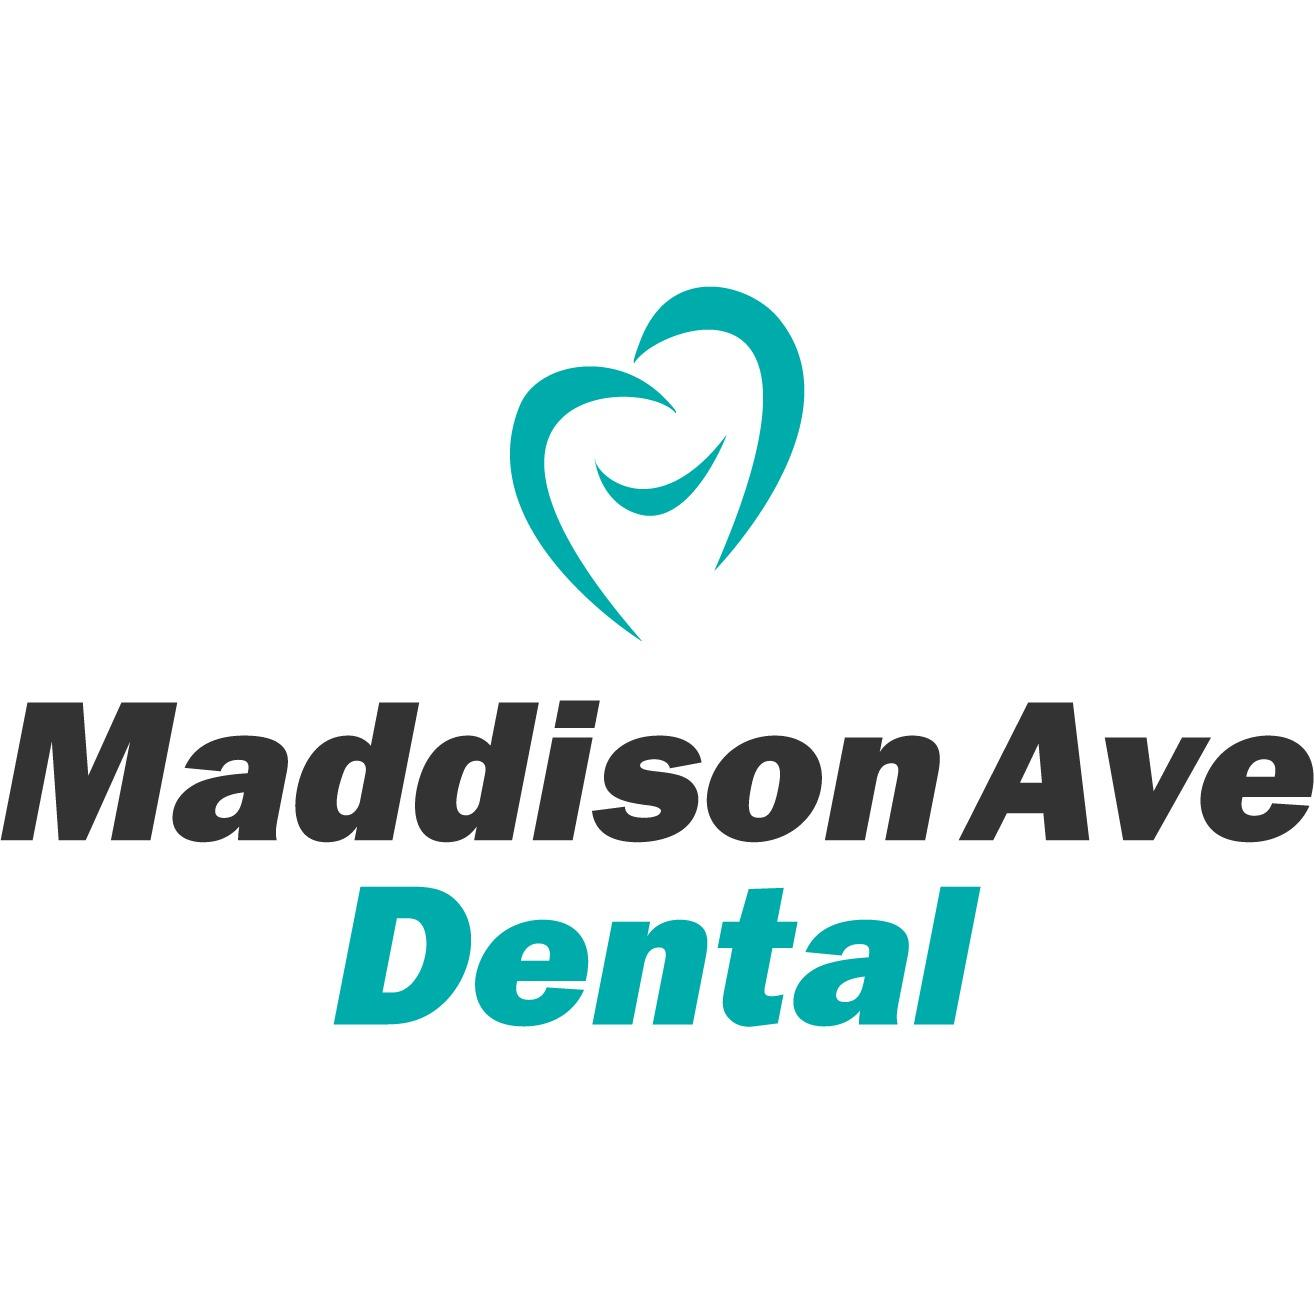 Maddison Ave Dental